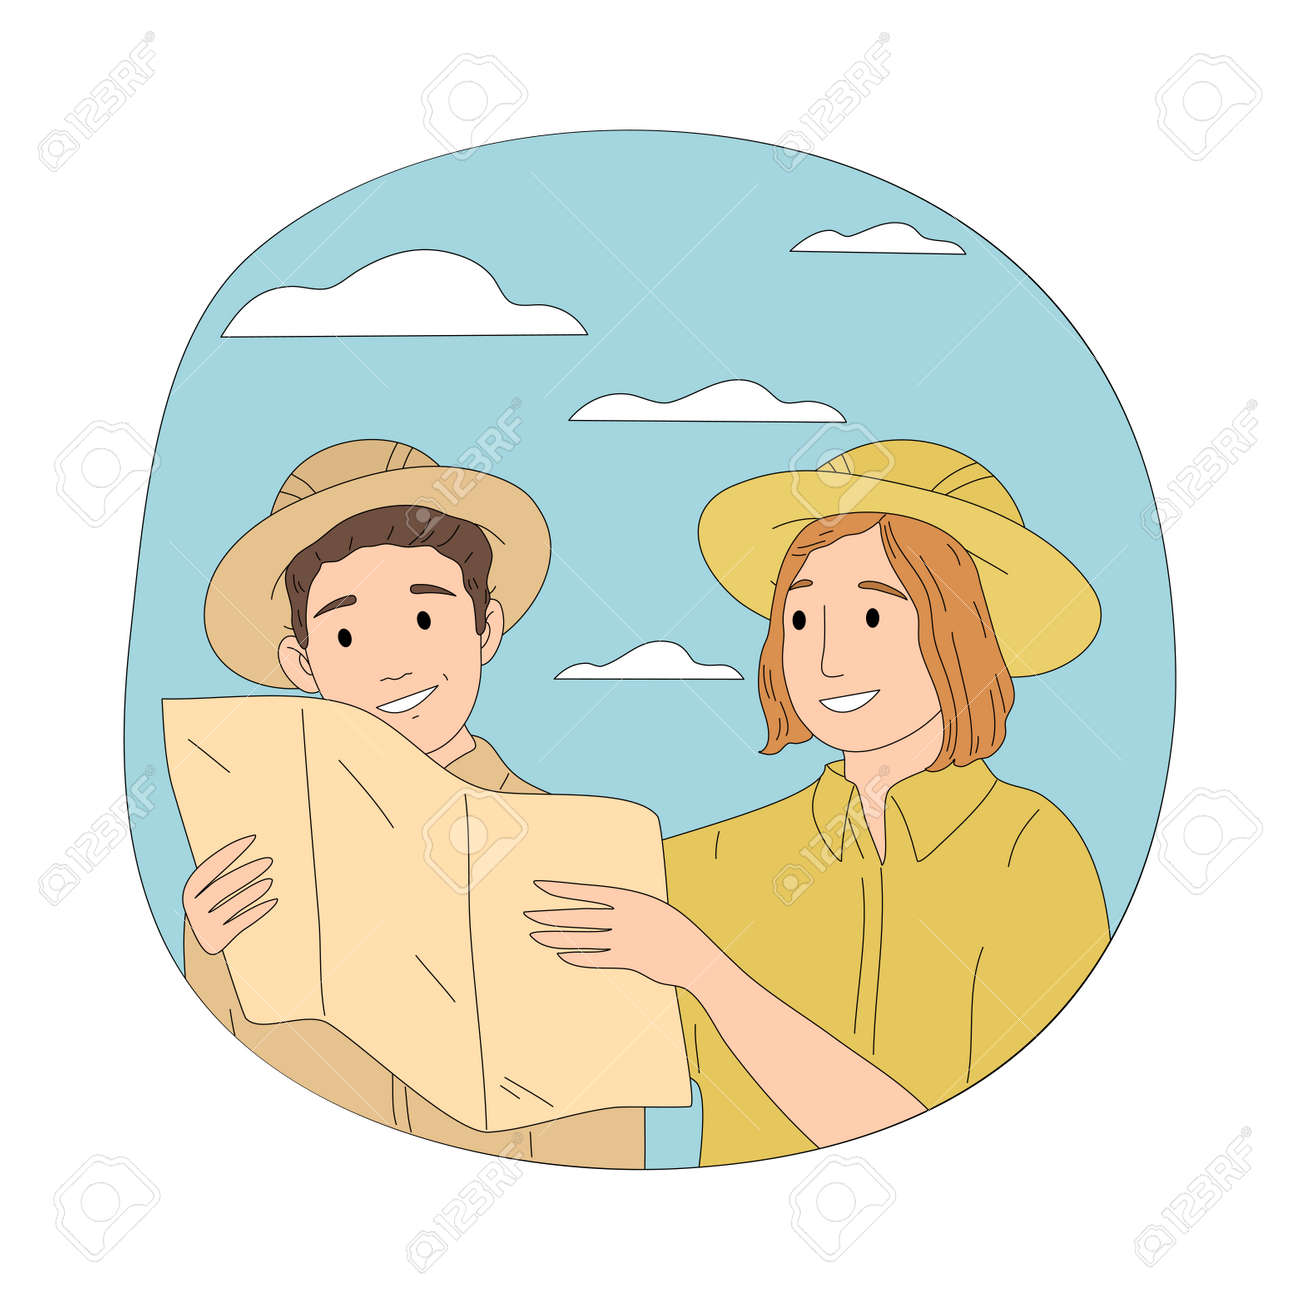 Couple tourists travelers in hats looking at map during safari trip - 164877062